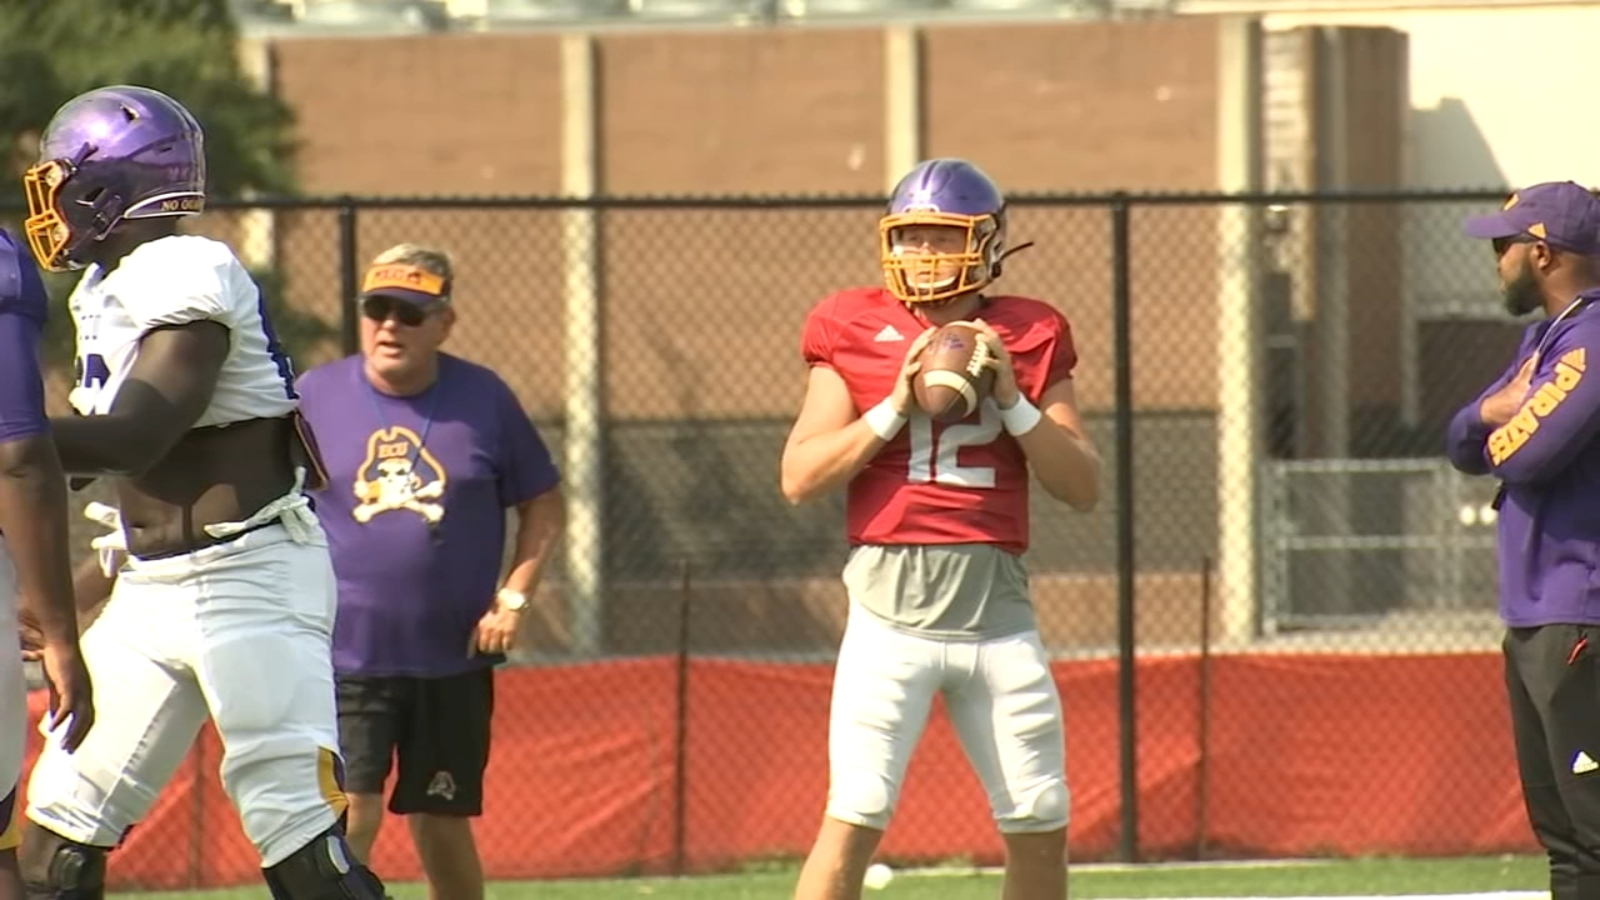 New-look Pirates preparing for rematch with NC State